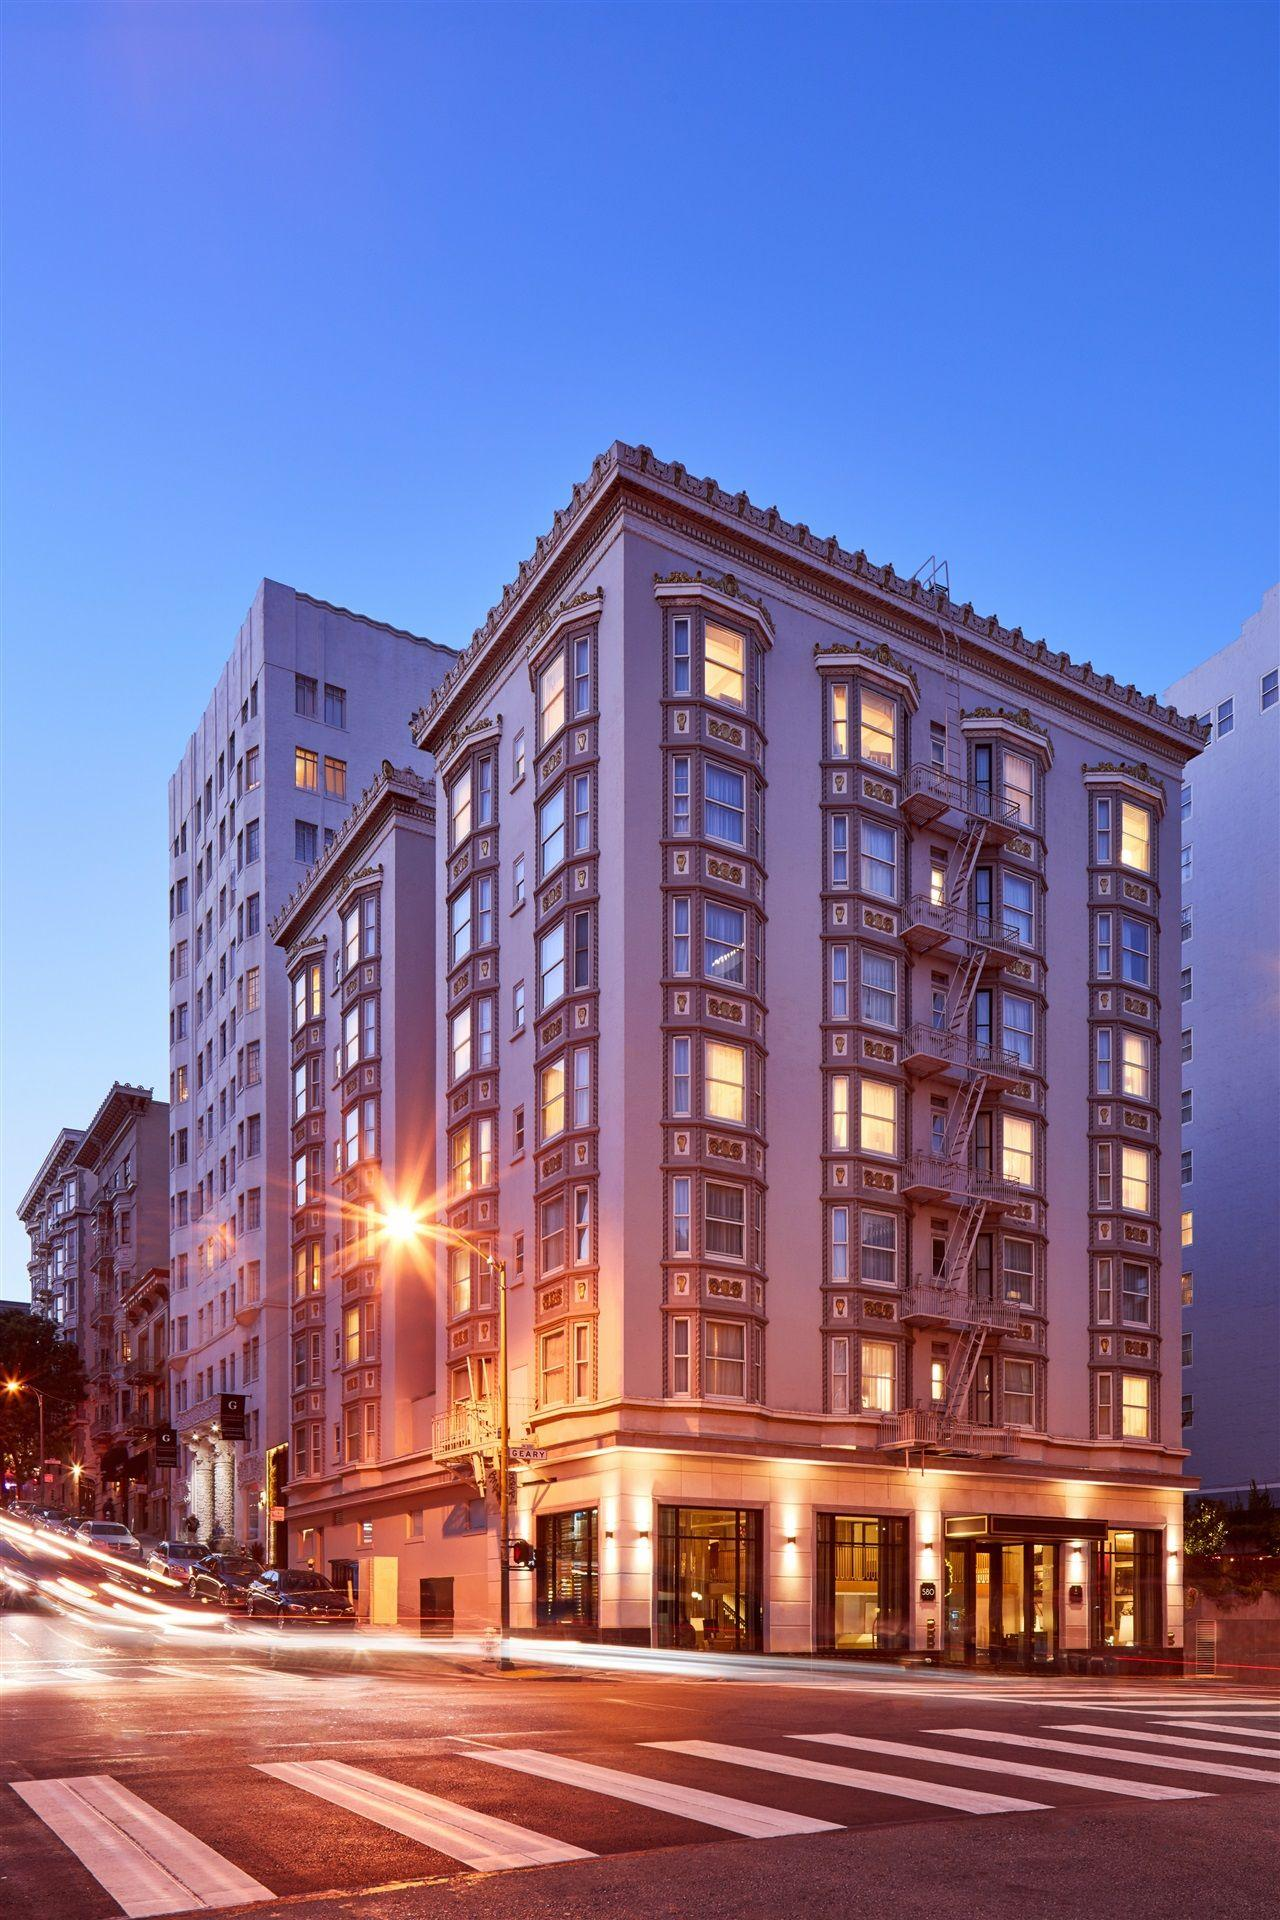 Staypineapple, An Elegant Hotel, Union Square